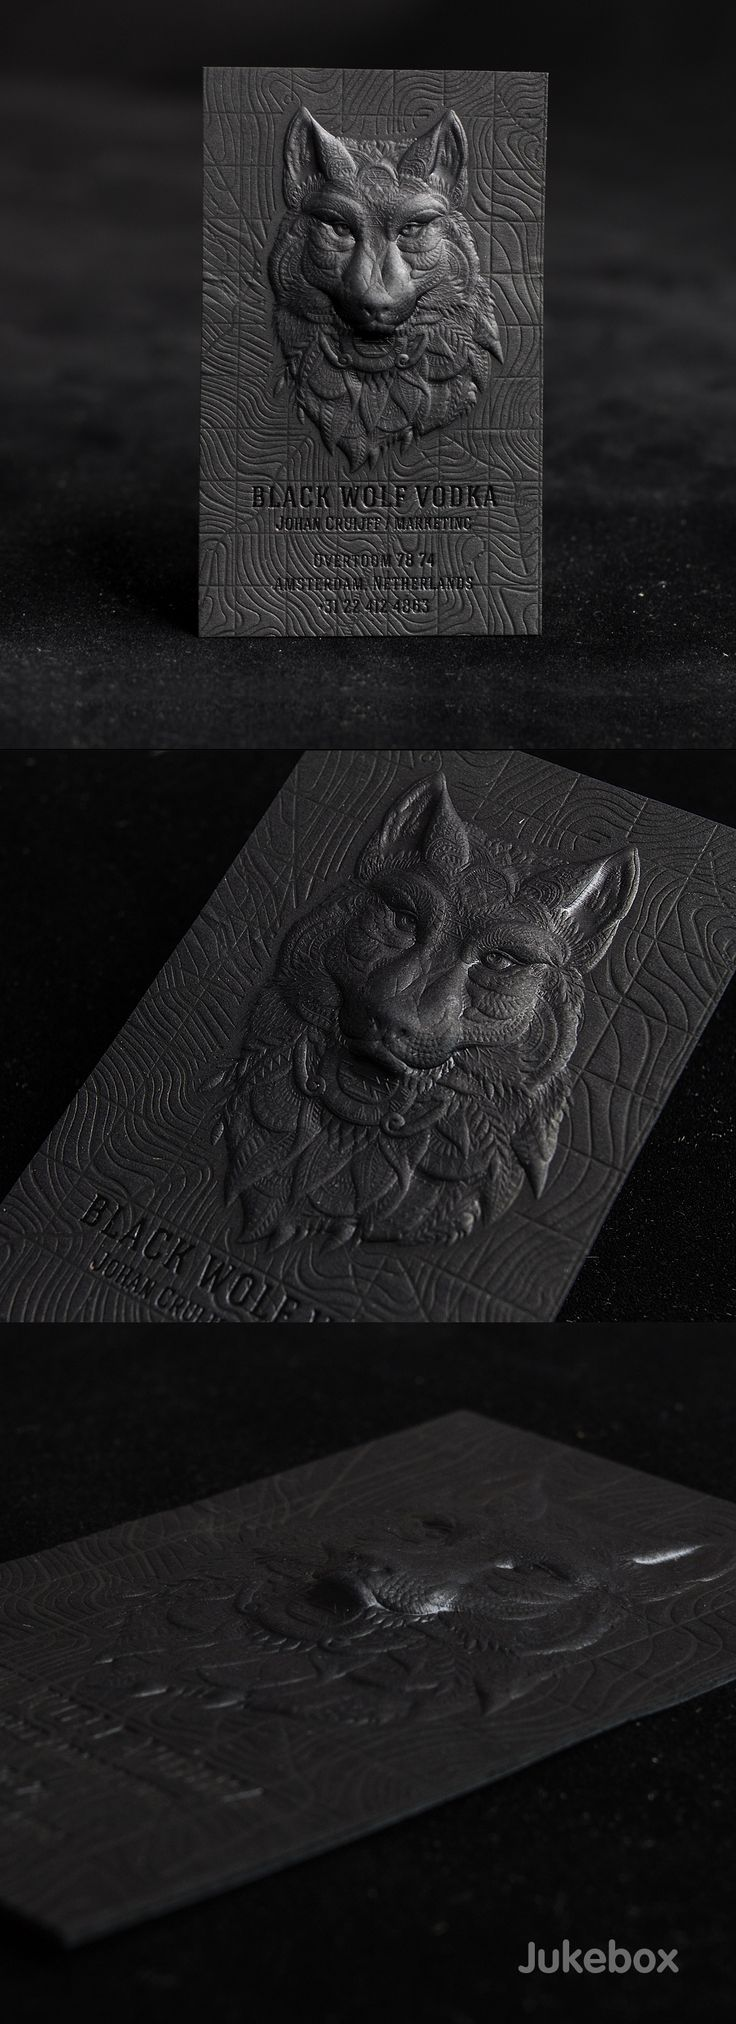 Amazing 3D Embossed Black Business Card  These outstanding black business cards feature an impressive combination of premium print services used to create the multi-level design and achieve unbelievable detail. A strong 30pt Onyx Black paper was 3D embossed in different levels to bring the wolf head to life. Produced by Jukeboxprint.com. #Jukeboxprint